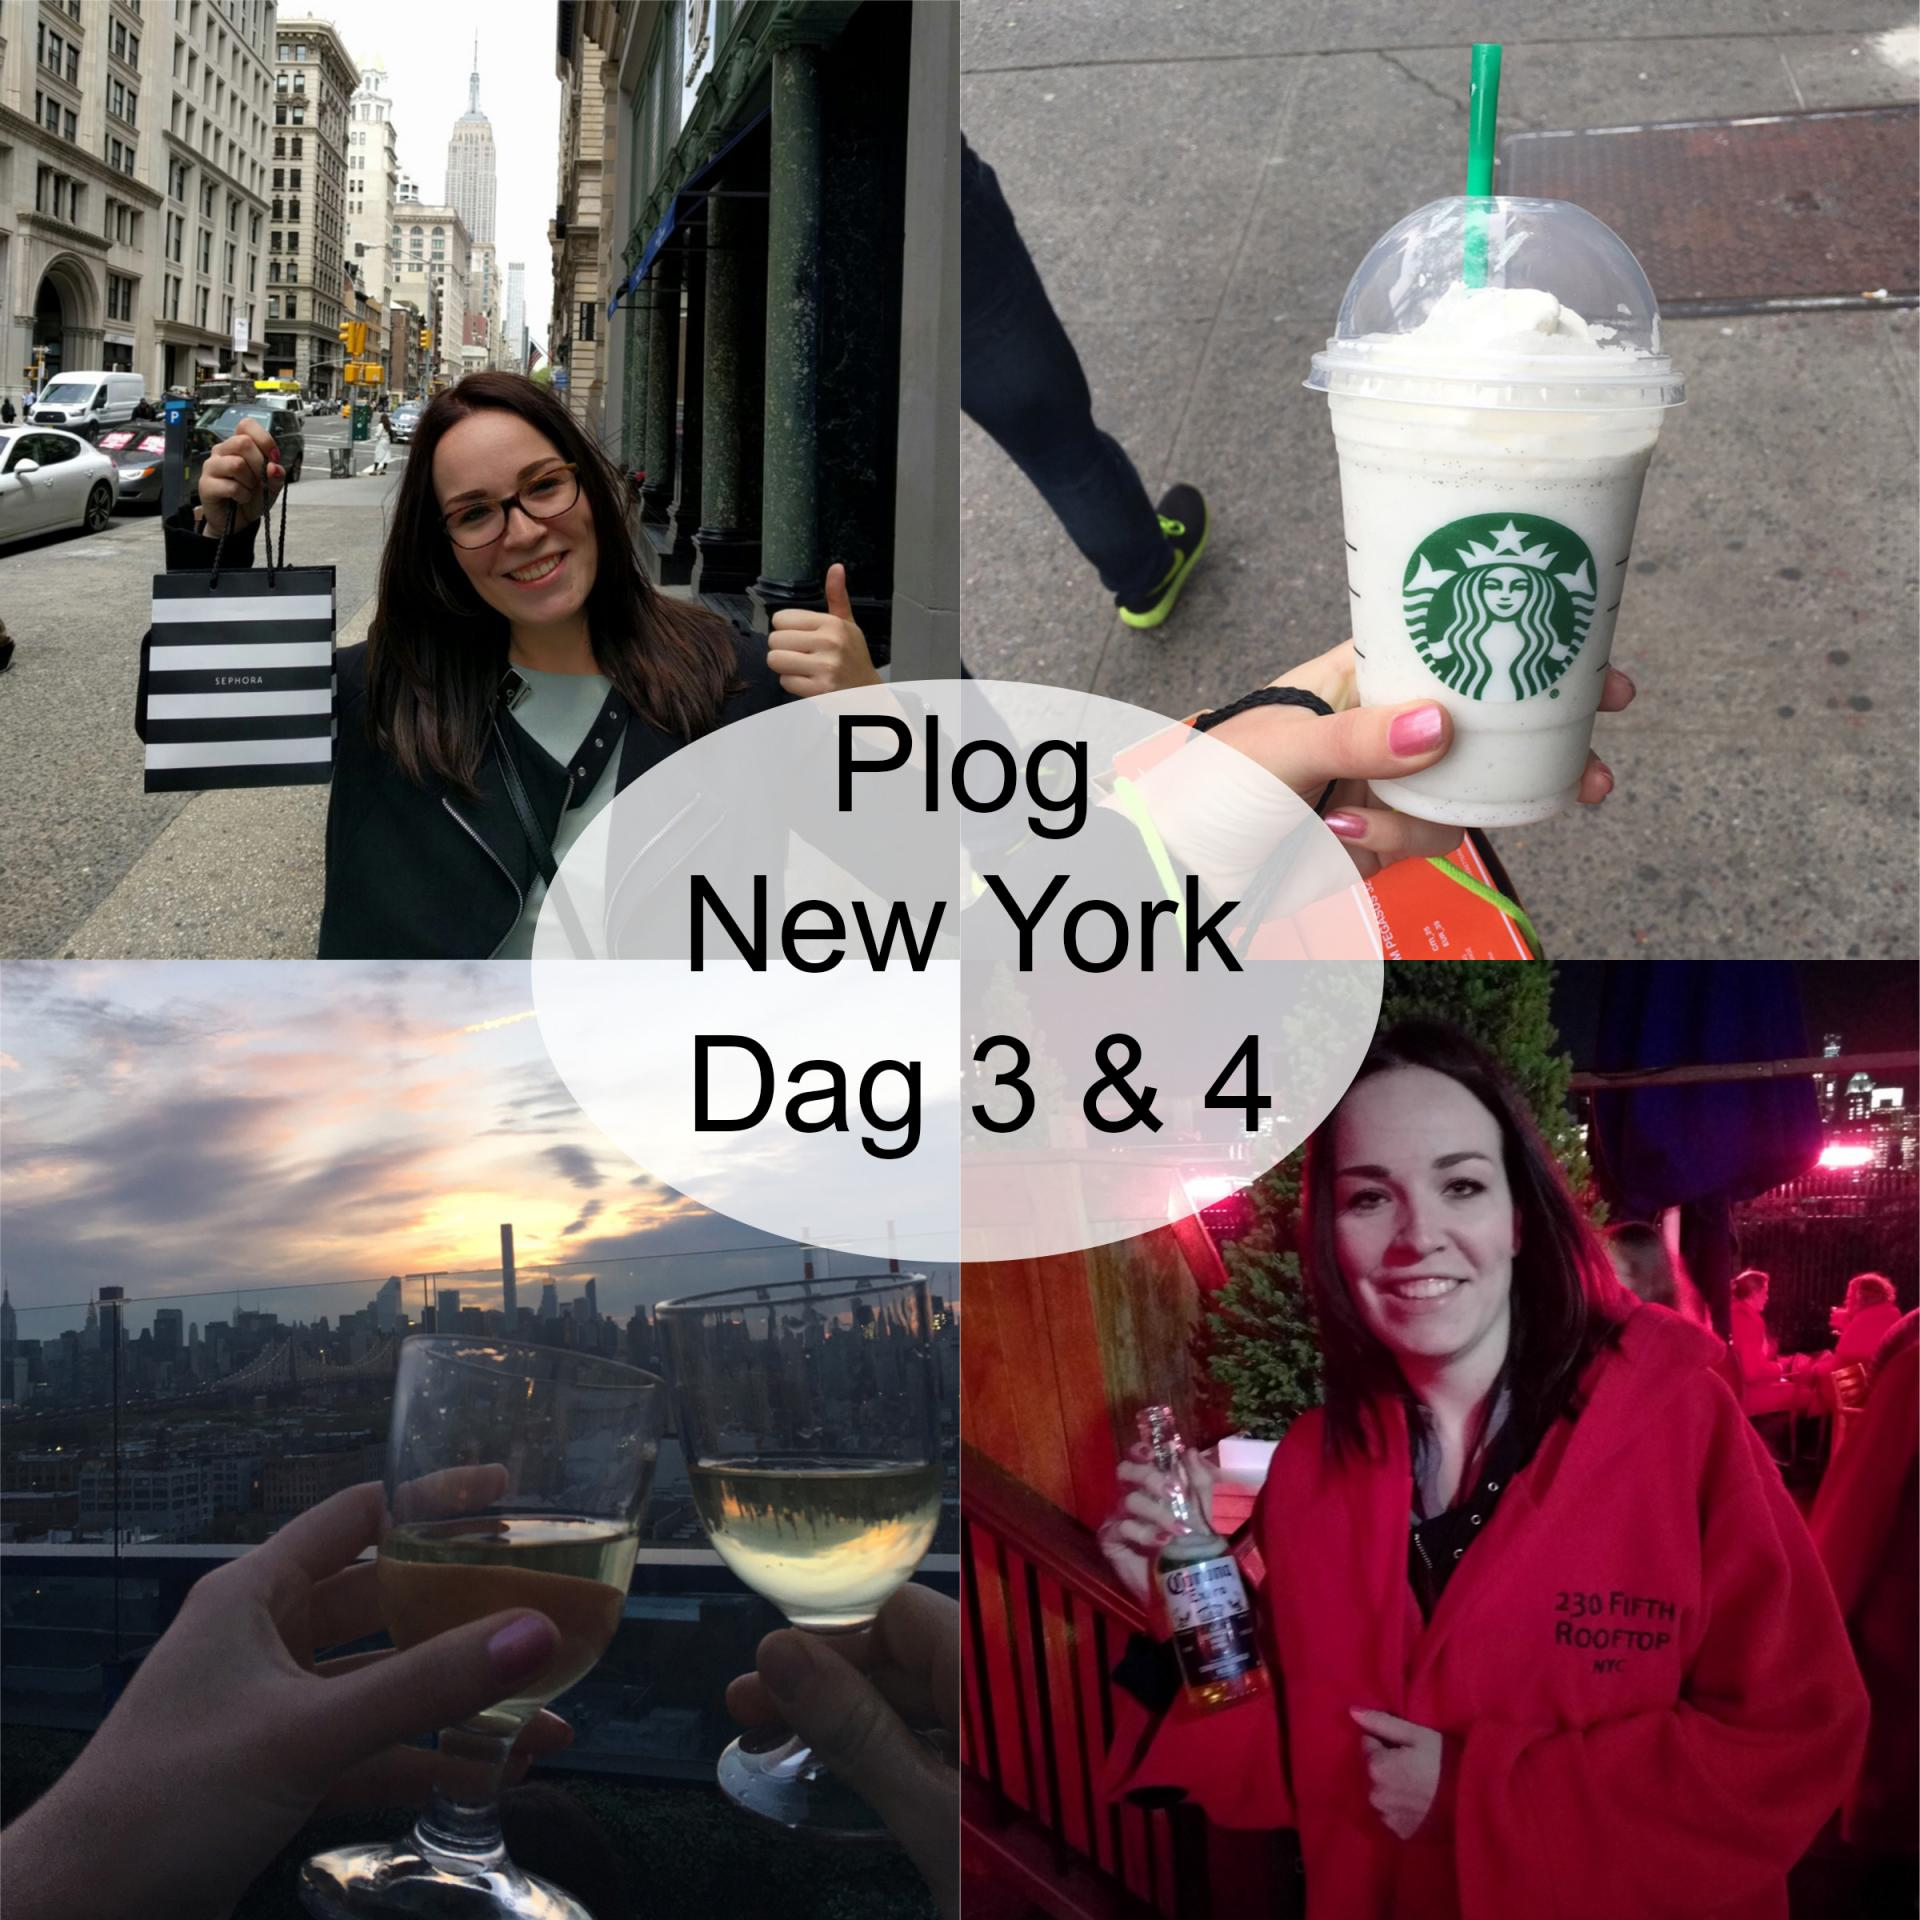 Plog New York Dag 3&4